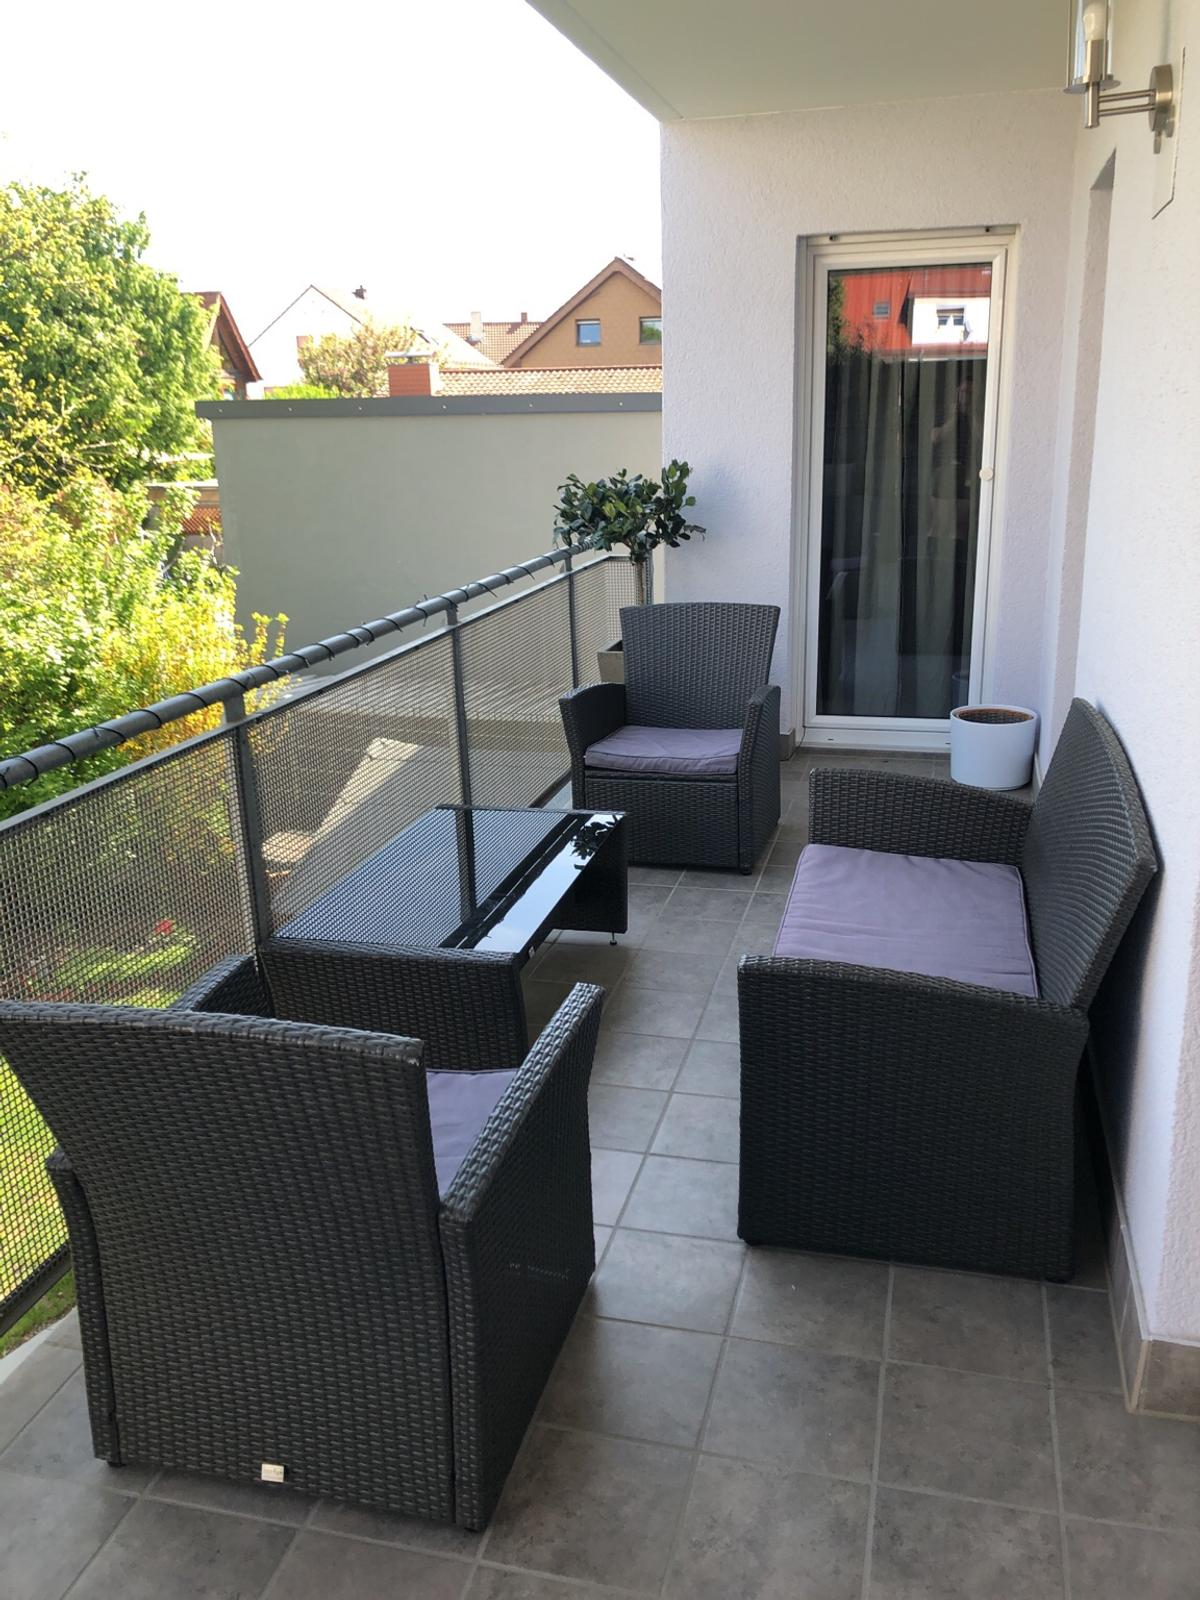 Balkon Lounge Set Balkon Lounge Set In 69214 Eppelheim For 120 00 For Sale Shpock